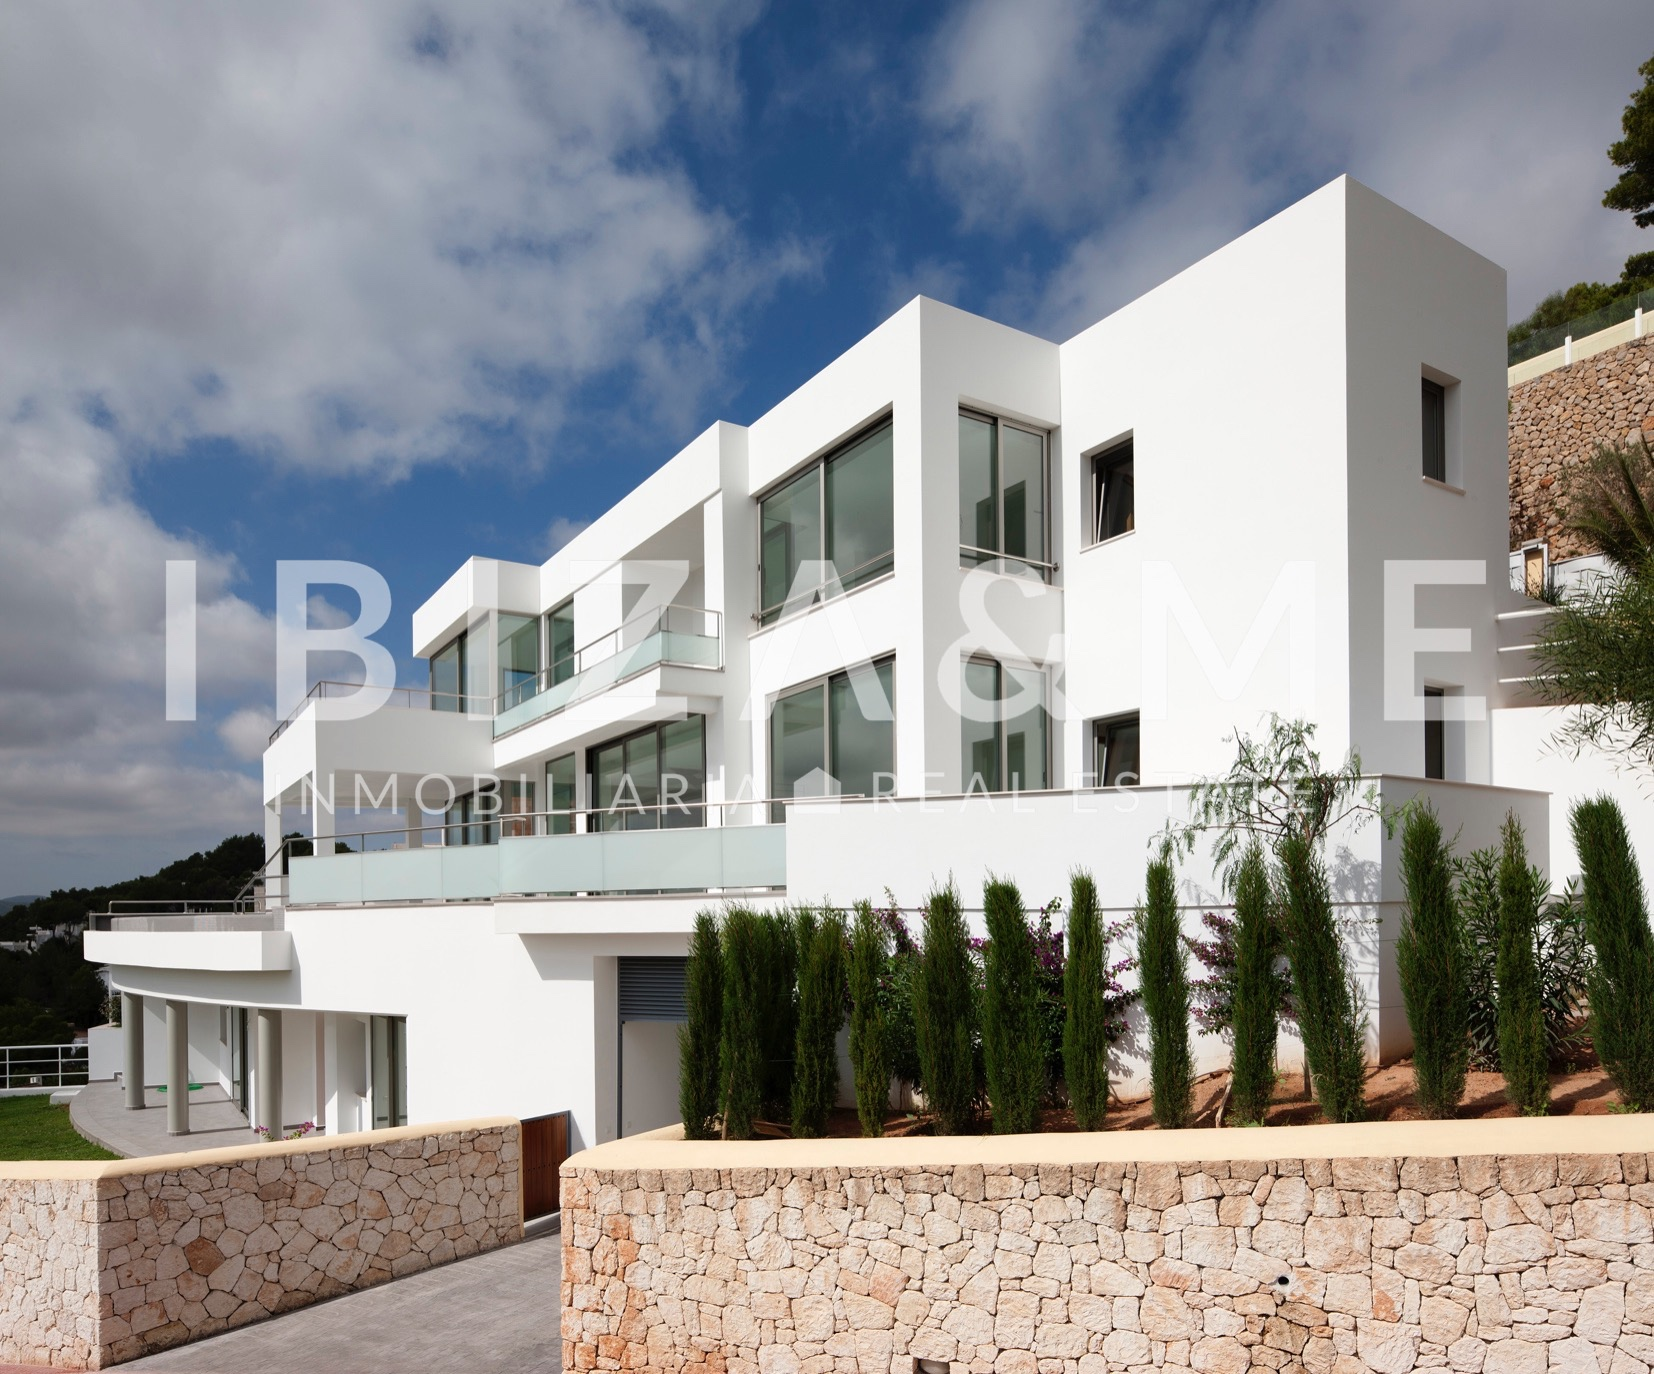 Ibiza's homes and gardens, october 2012.